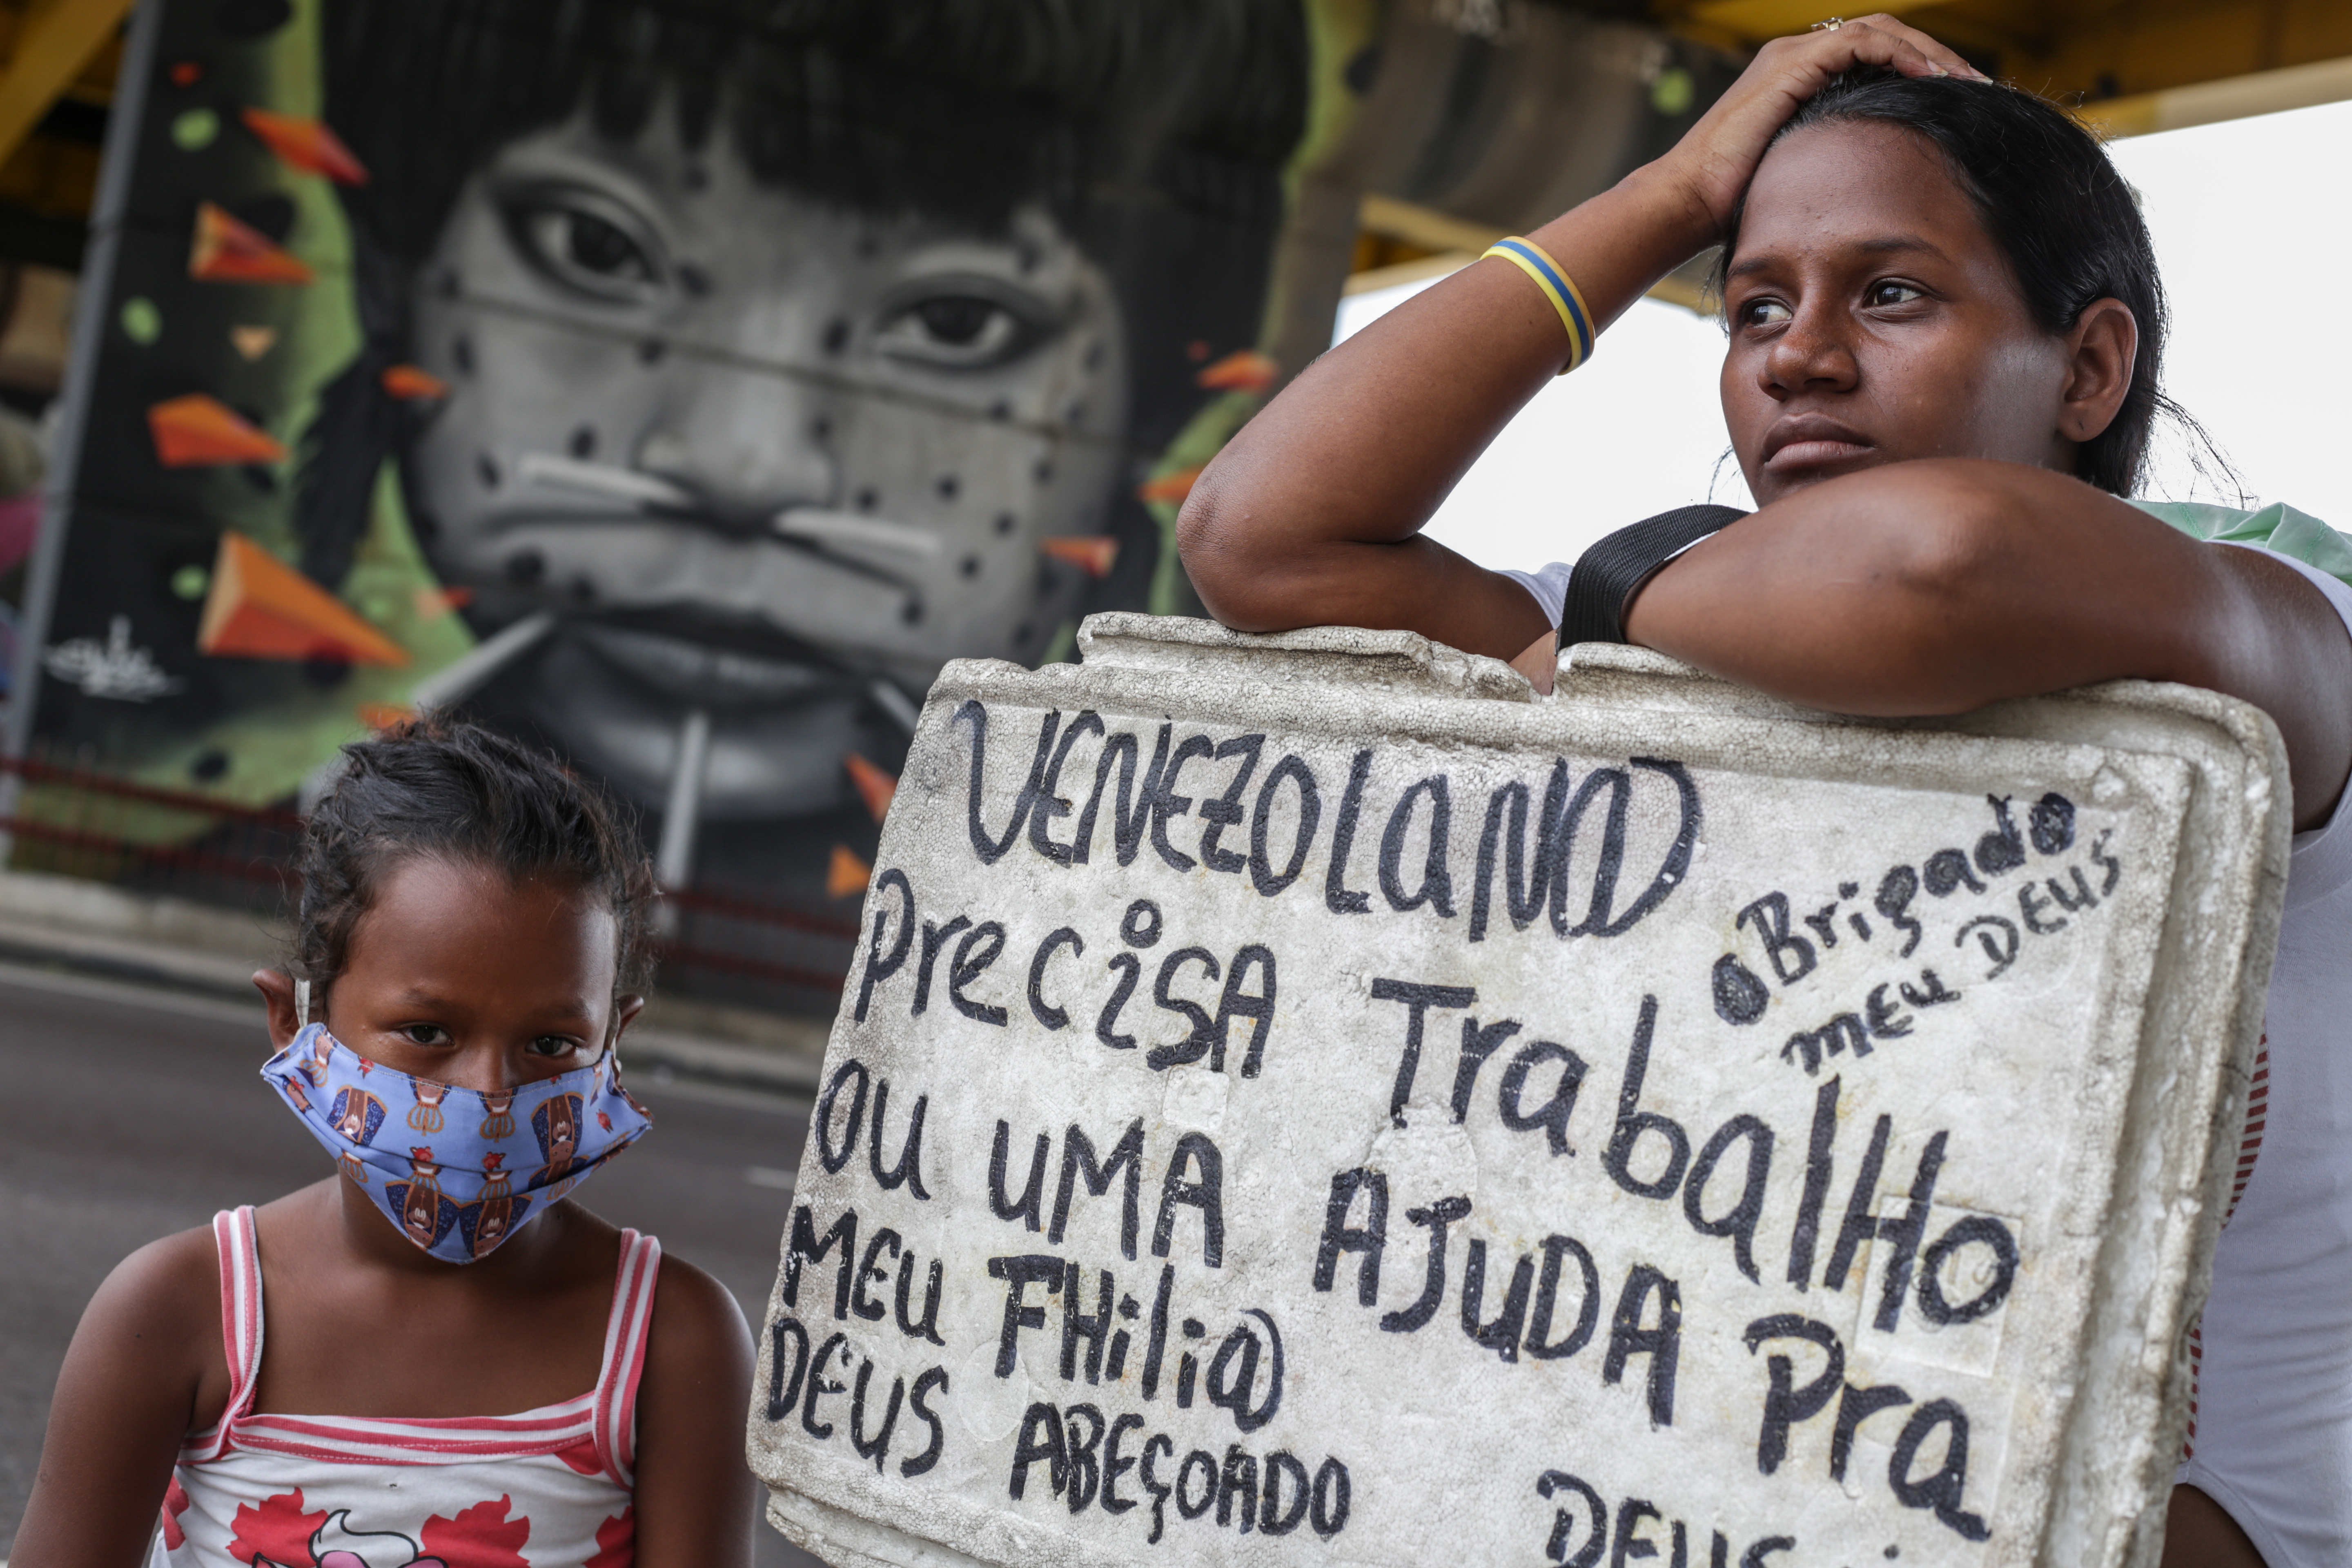 MANAUS, BRAZIL - MAY 23: Melida Marquez, a 23 years old venezuelan woman holds a sign asking for job and help with her daughter Genesis, 6, at downtown Manaus on May 23 2020 in Manaus, Brazil. Melida arrived in Manaus a year ago, is pregnant of her fourth kid and has no protective masks. She uses the money  got from pedestrians to buy food for her family. Brazil has now 330.890 people infected by the coronavirus disease (COVID-19) according to Health Ministry and became the the second country in the world with more cases. (Photo by Andre Coelho/Getty Images)